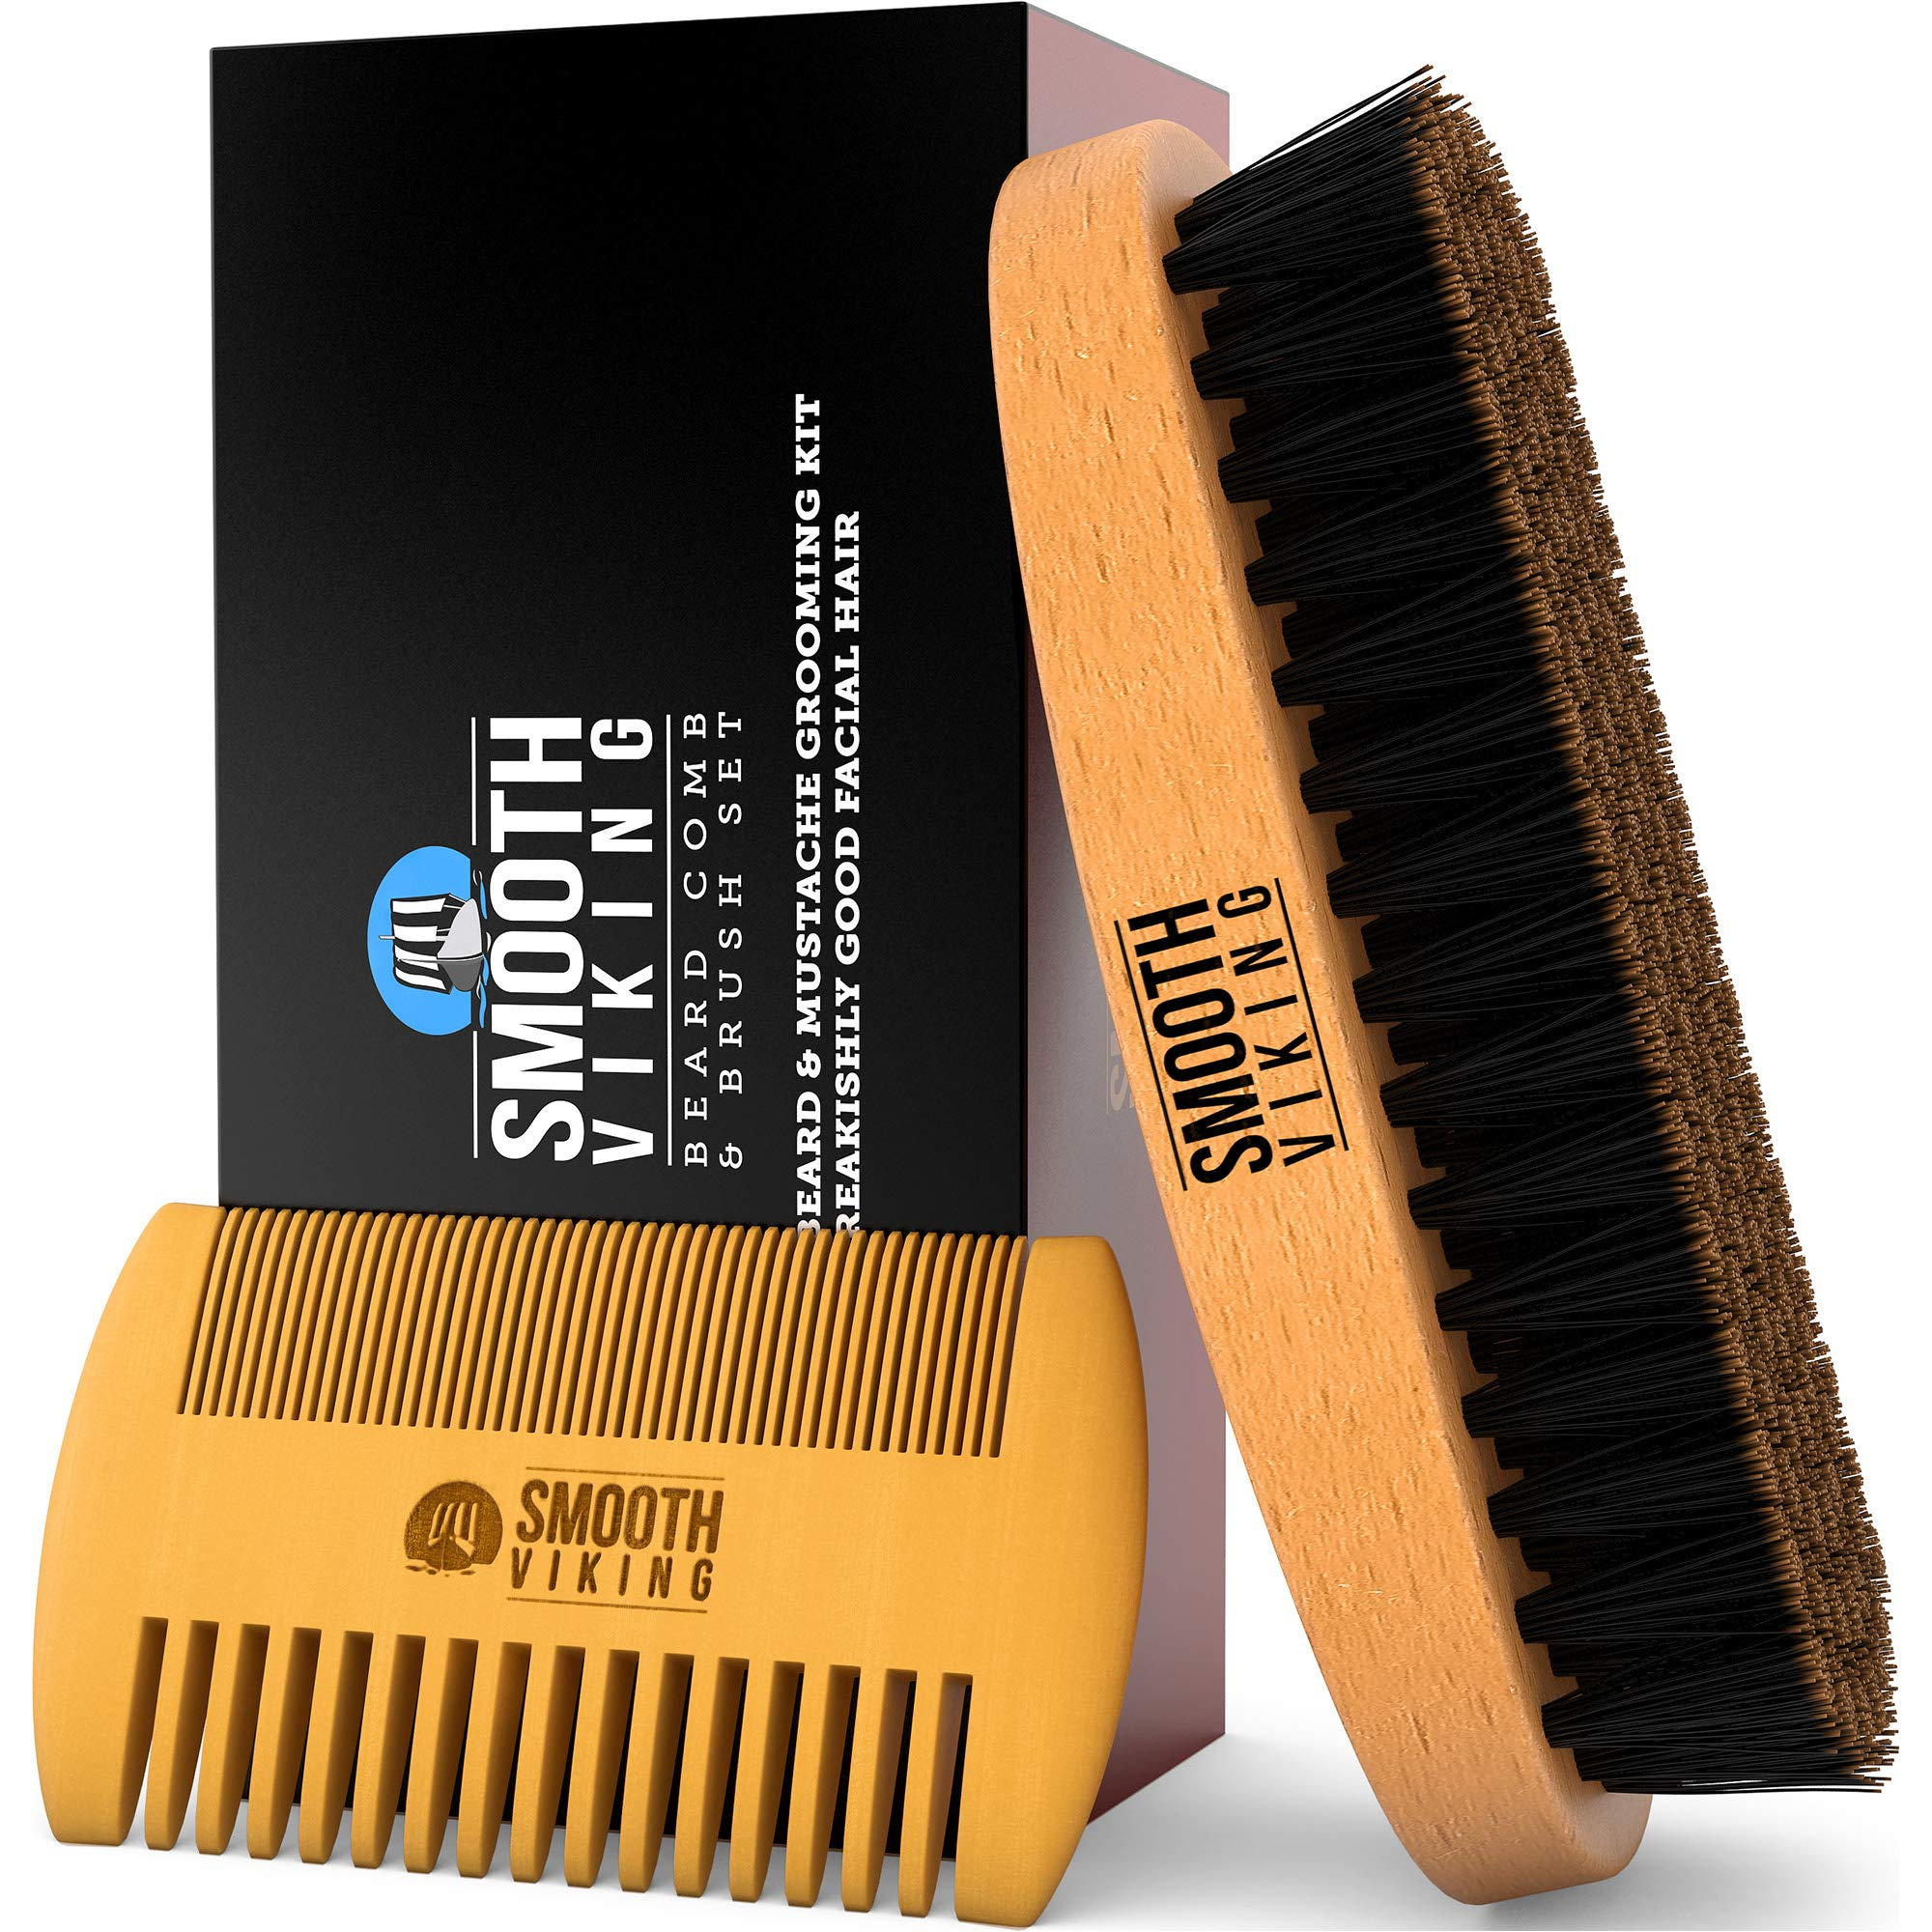 Beard Brush and Comb - Natural Boar Bristle Beard Brush & Wooden Grooming Comb - Facial Hair Care Gift Set for Men - Mustache Styling, Grooming & Shaping Tools